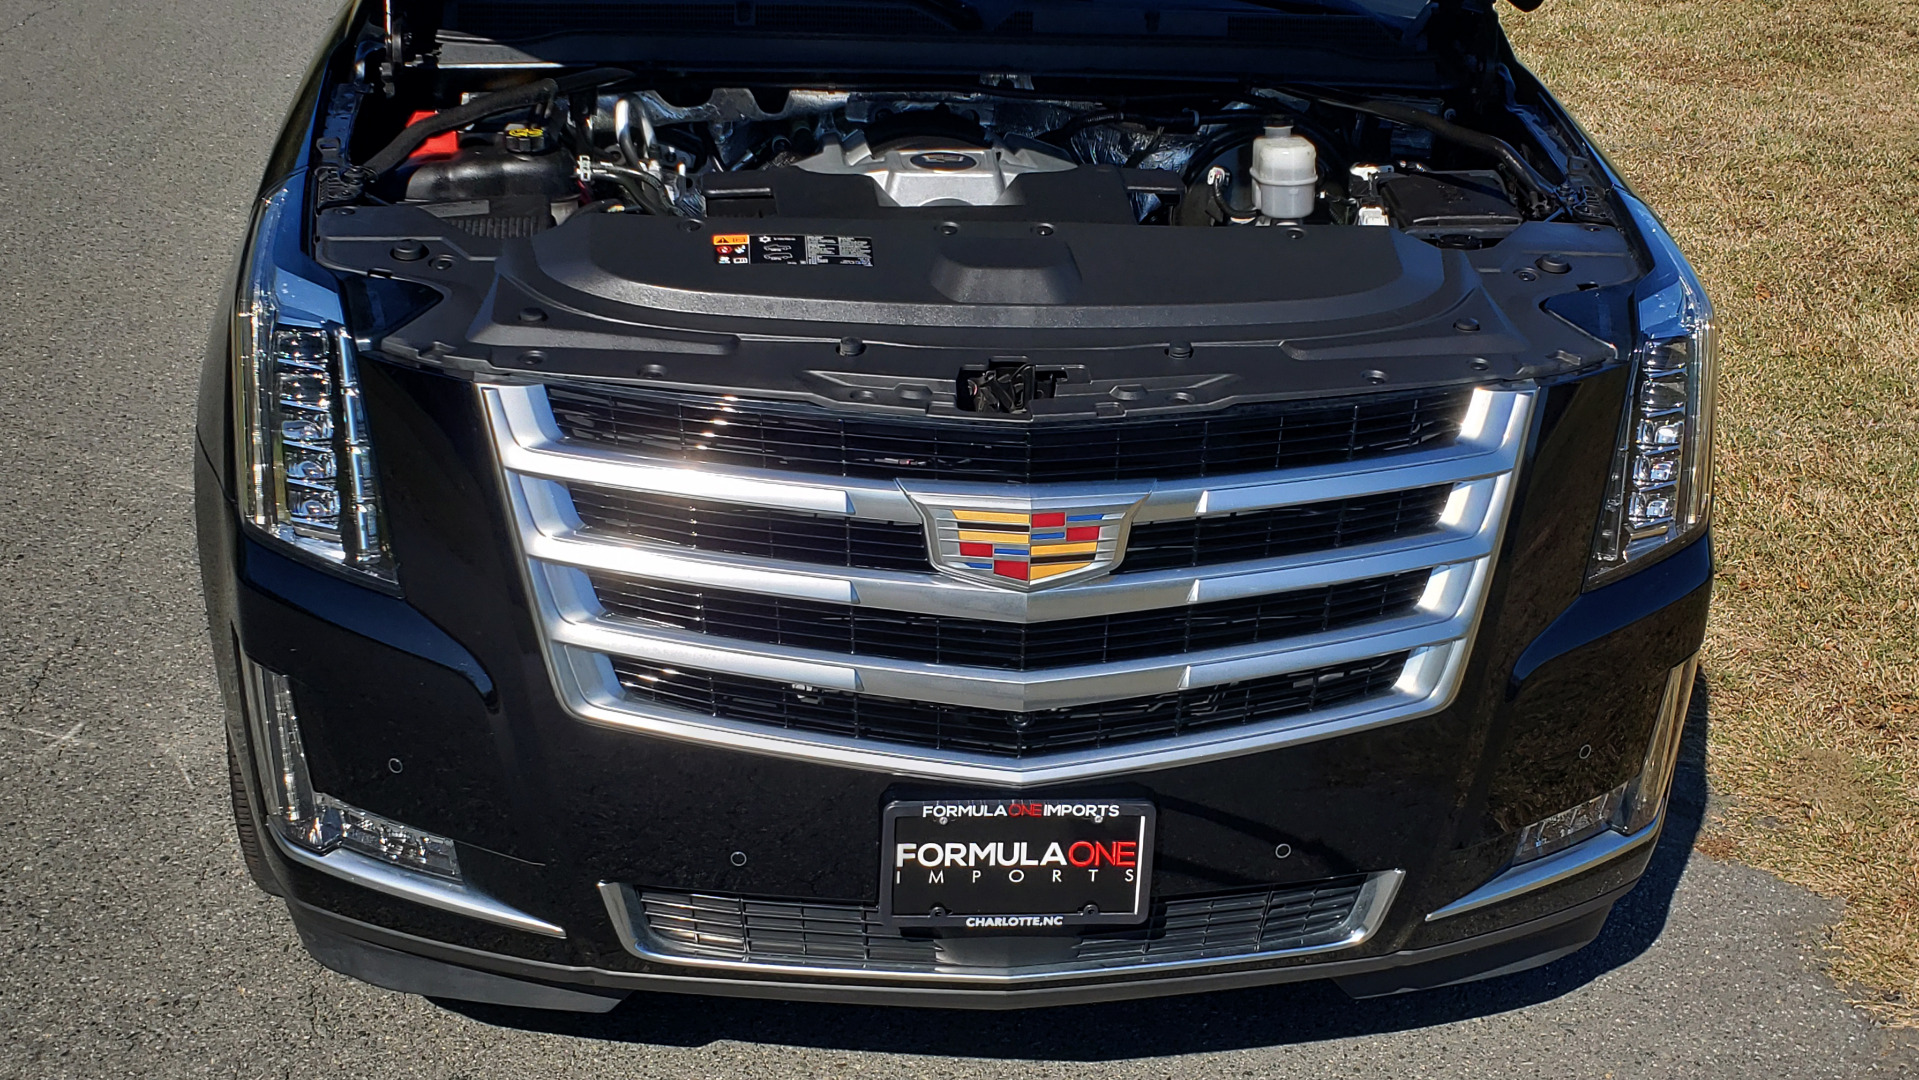 Used 2016 Cadillac ESCALADE ESV PREMIUM COLLECTION / NAV / 3-ROW / SUNROOF / CAMERA for sale Sold at Formula Imports in Charlotte NC 28227 17